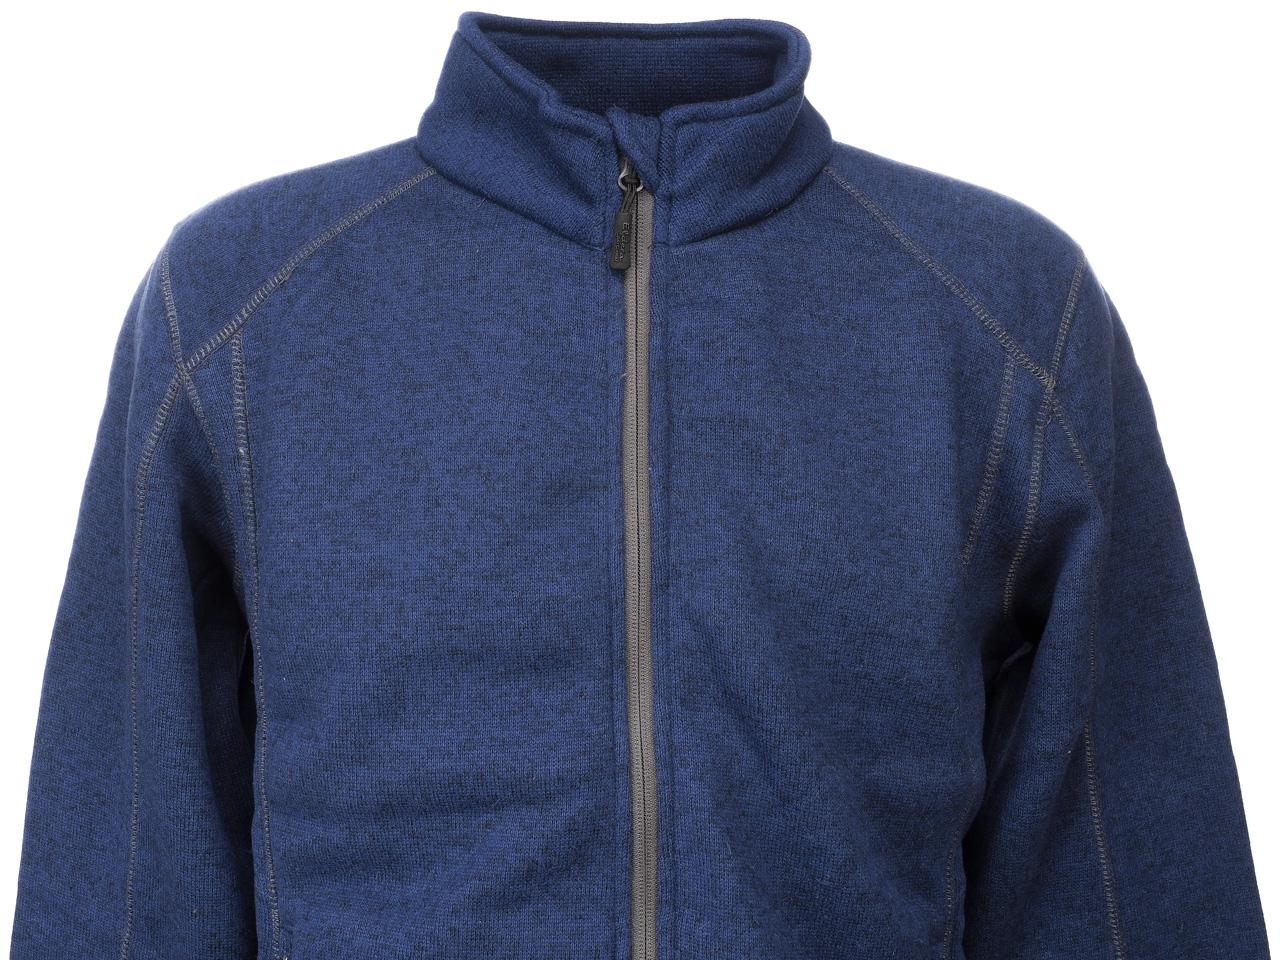 Jackets-Sweaters-Zip-Eldera-Sportswear-Croket-Navy-Ch-Fz-Vest-Blue-59840-New thumbnail 2